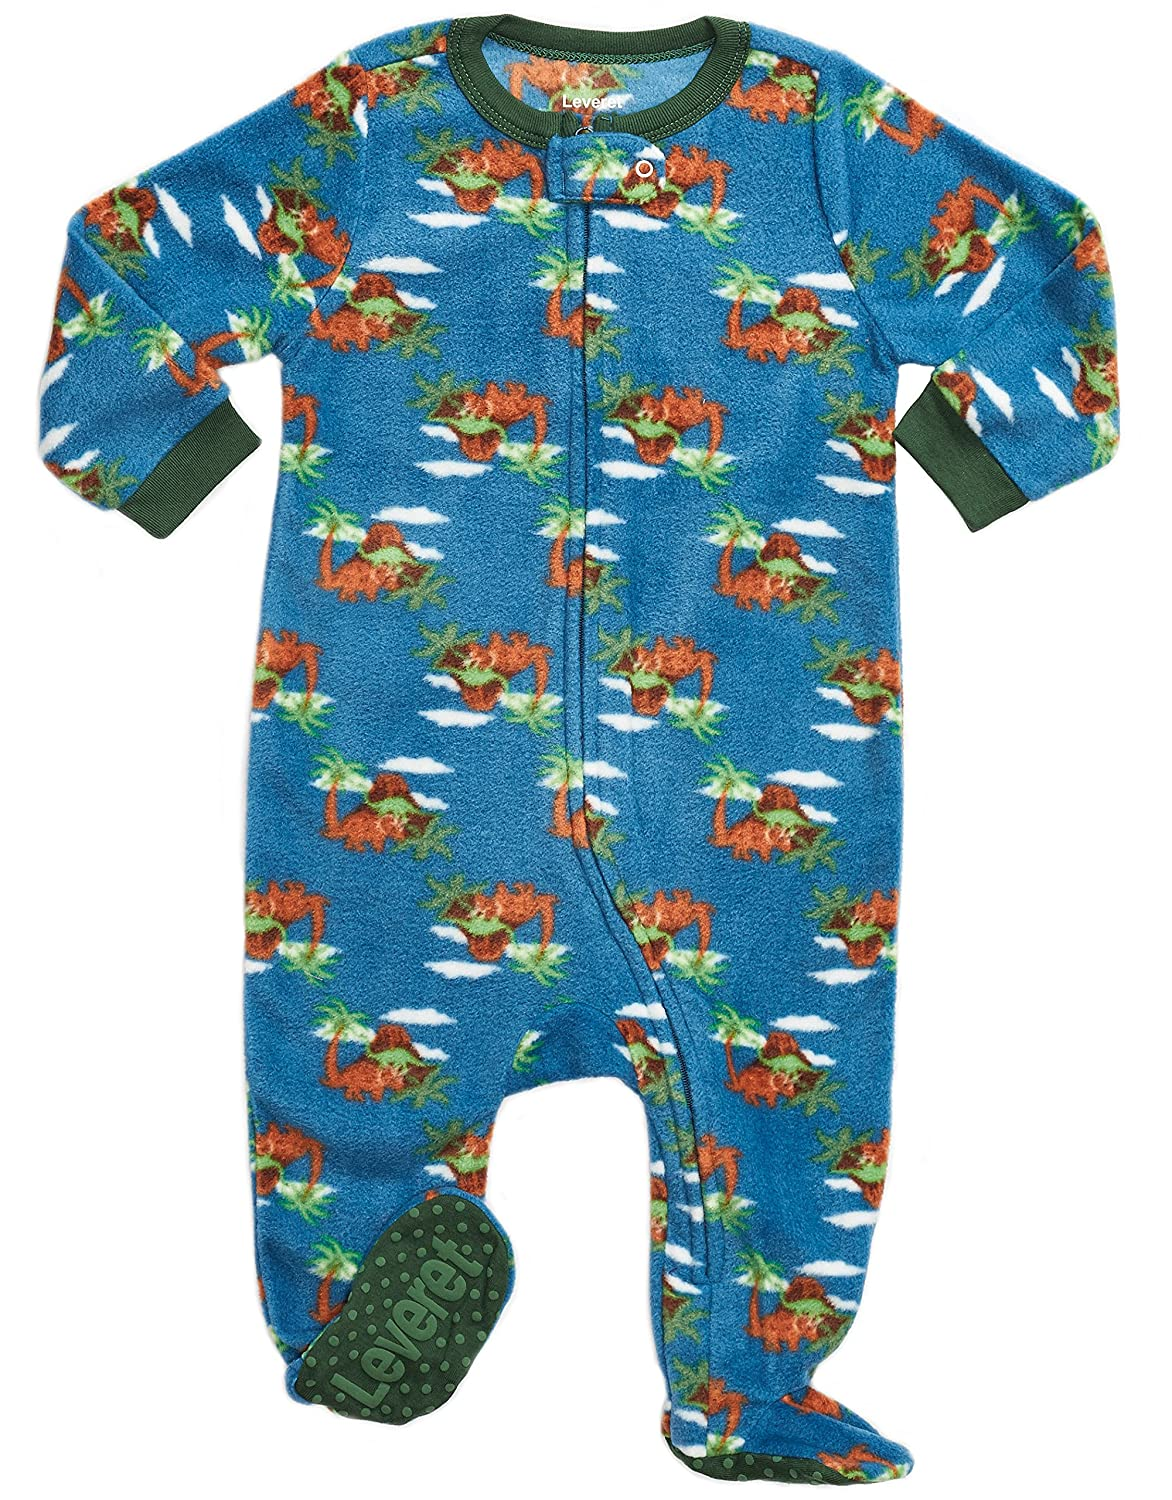 Leveret Fleece Baby Boys Footed Pajamas Sleeper Kids Toddler Pajamas 3 Months 5 Toddler